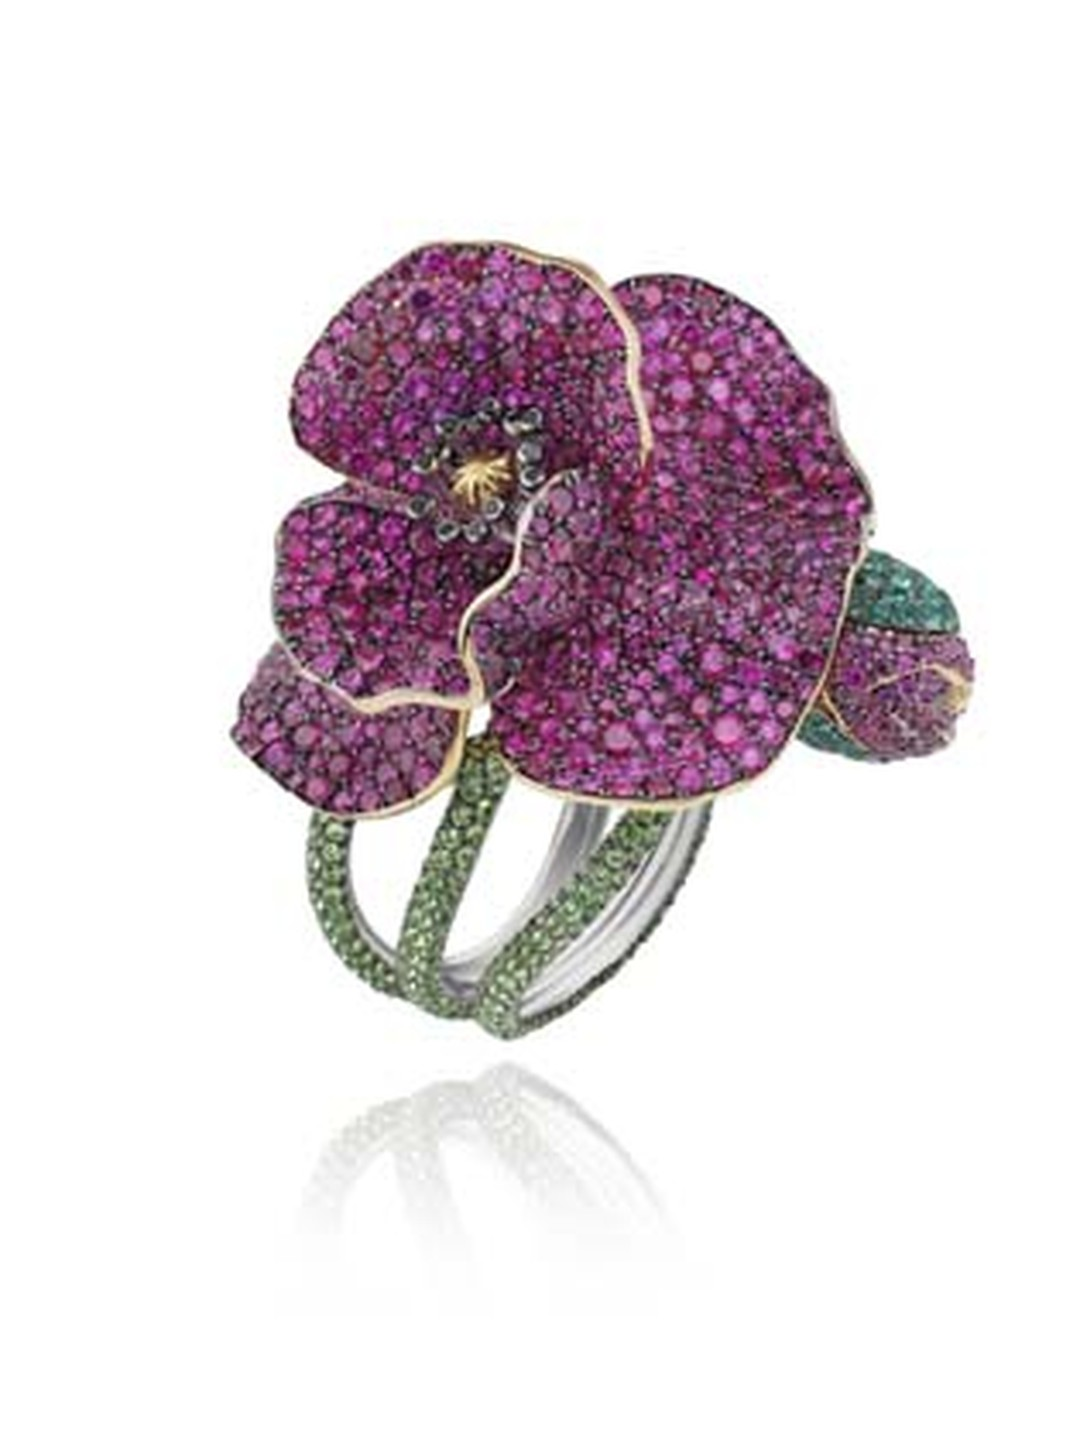 829236-9001 Poppy Ring  from the Red Carpet Collection 2013 white.jpg